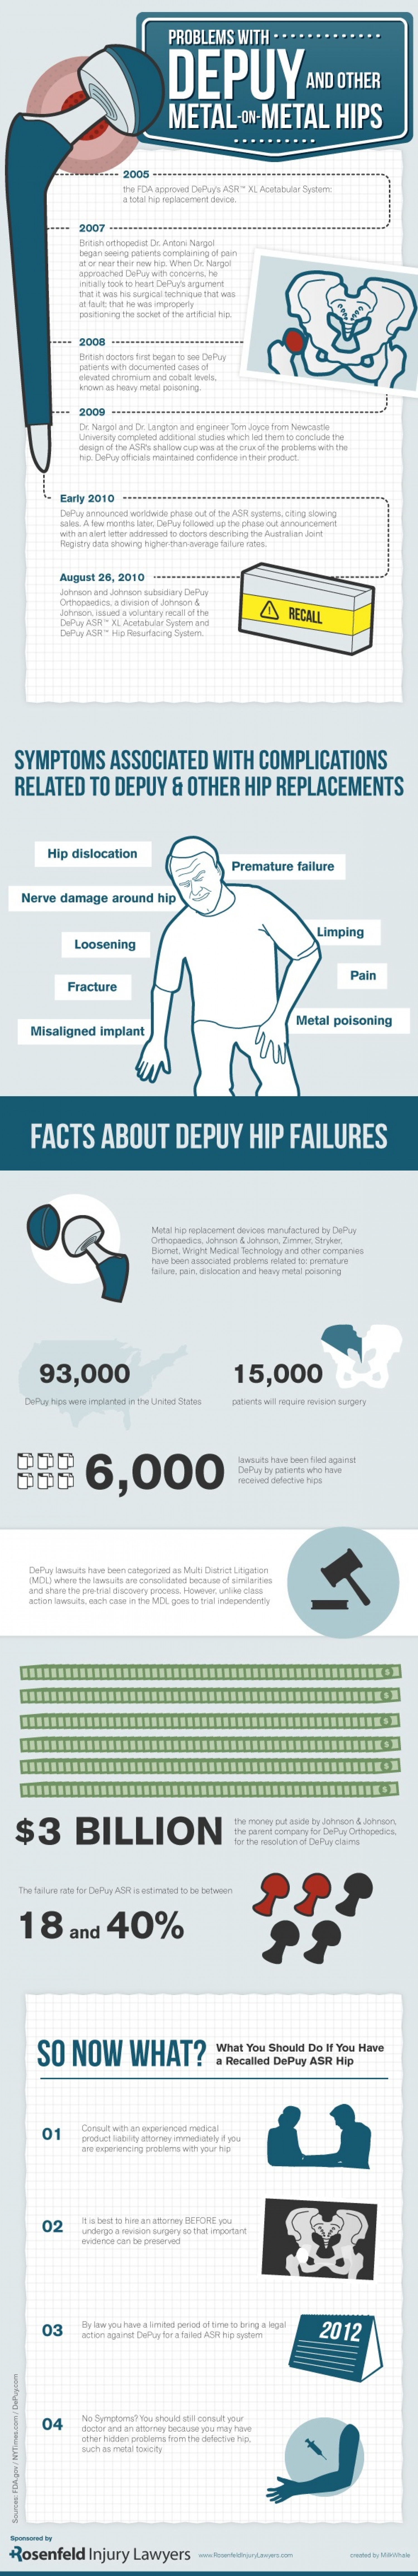 Problems With DePuy & Other Metal-On-Metal Hips Infographic